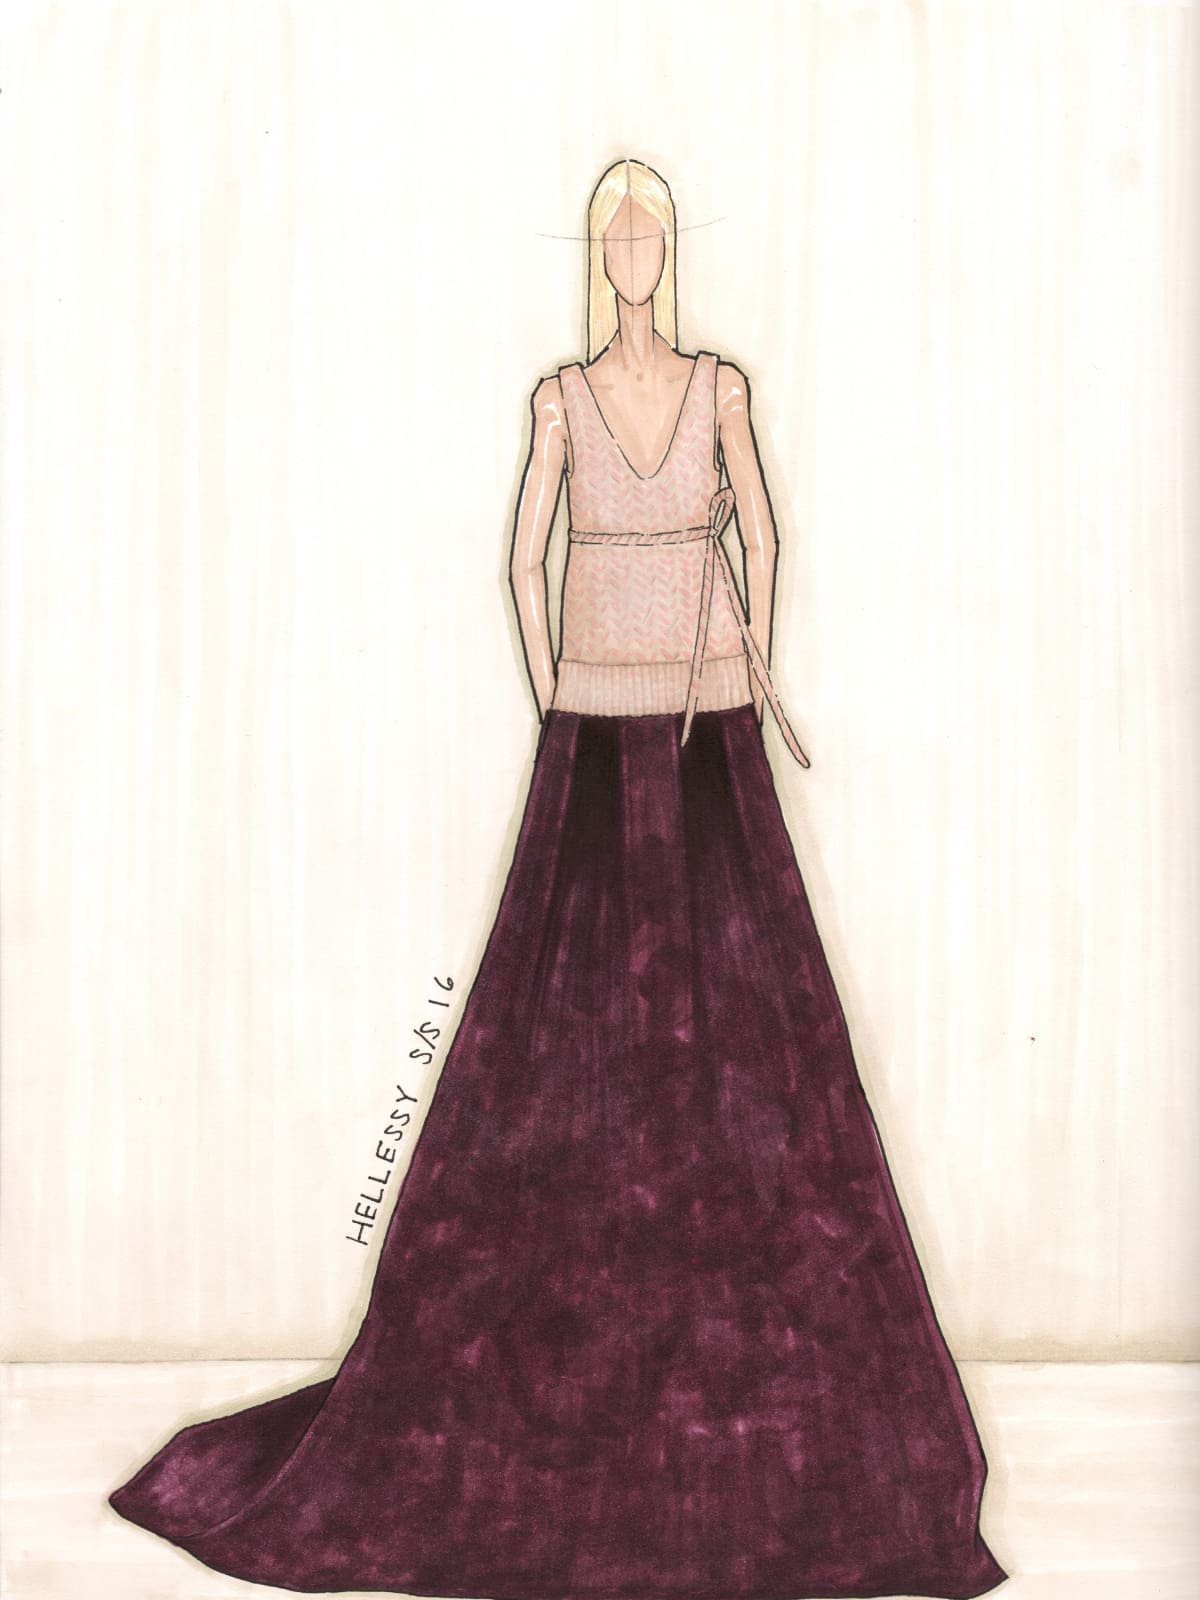 Hellessy designer Sylvie Millstein spring 2016 sketch New York Fashion Week